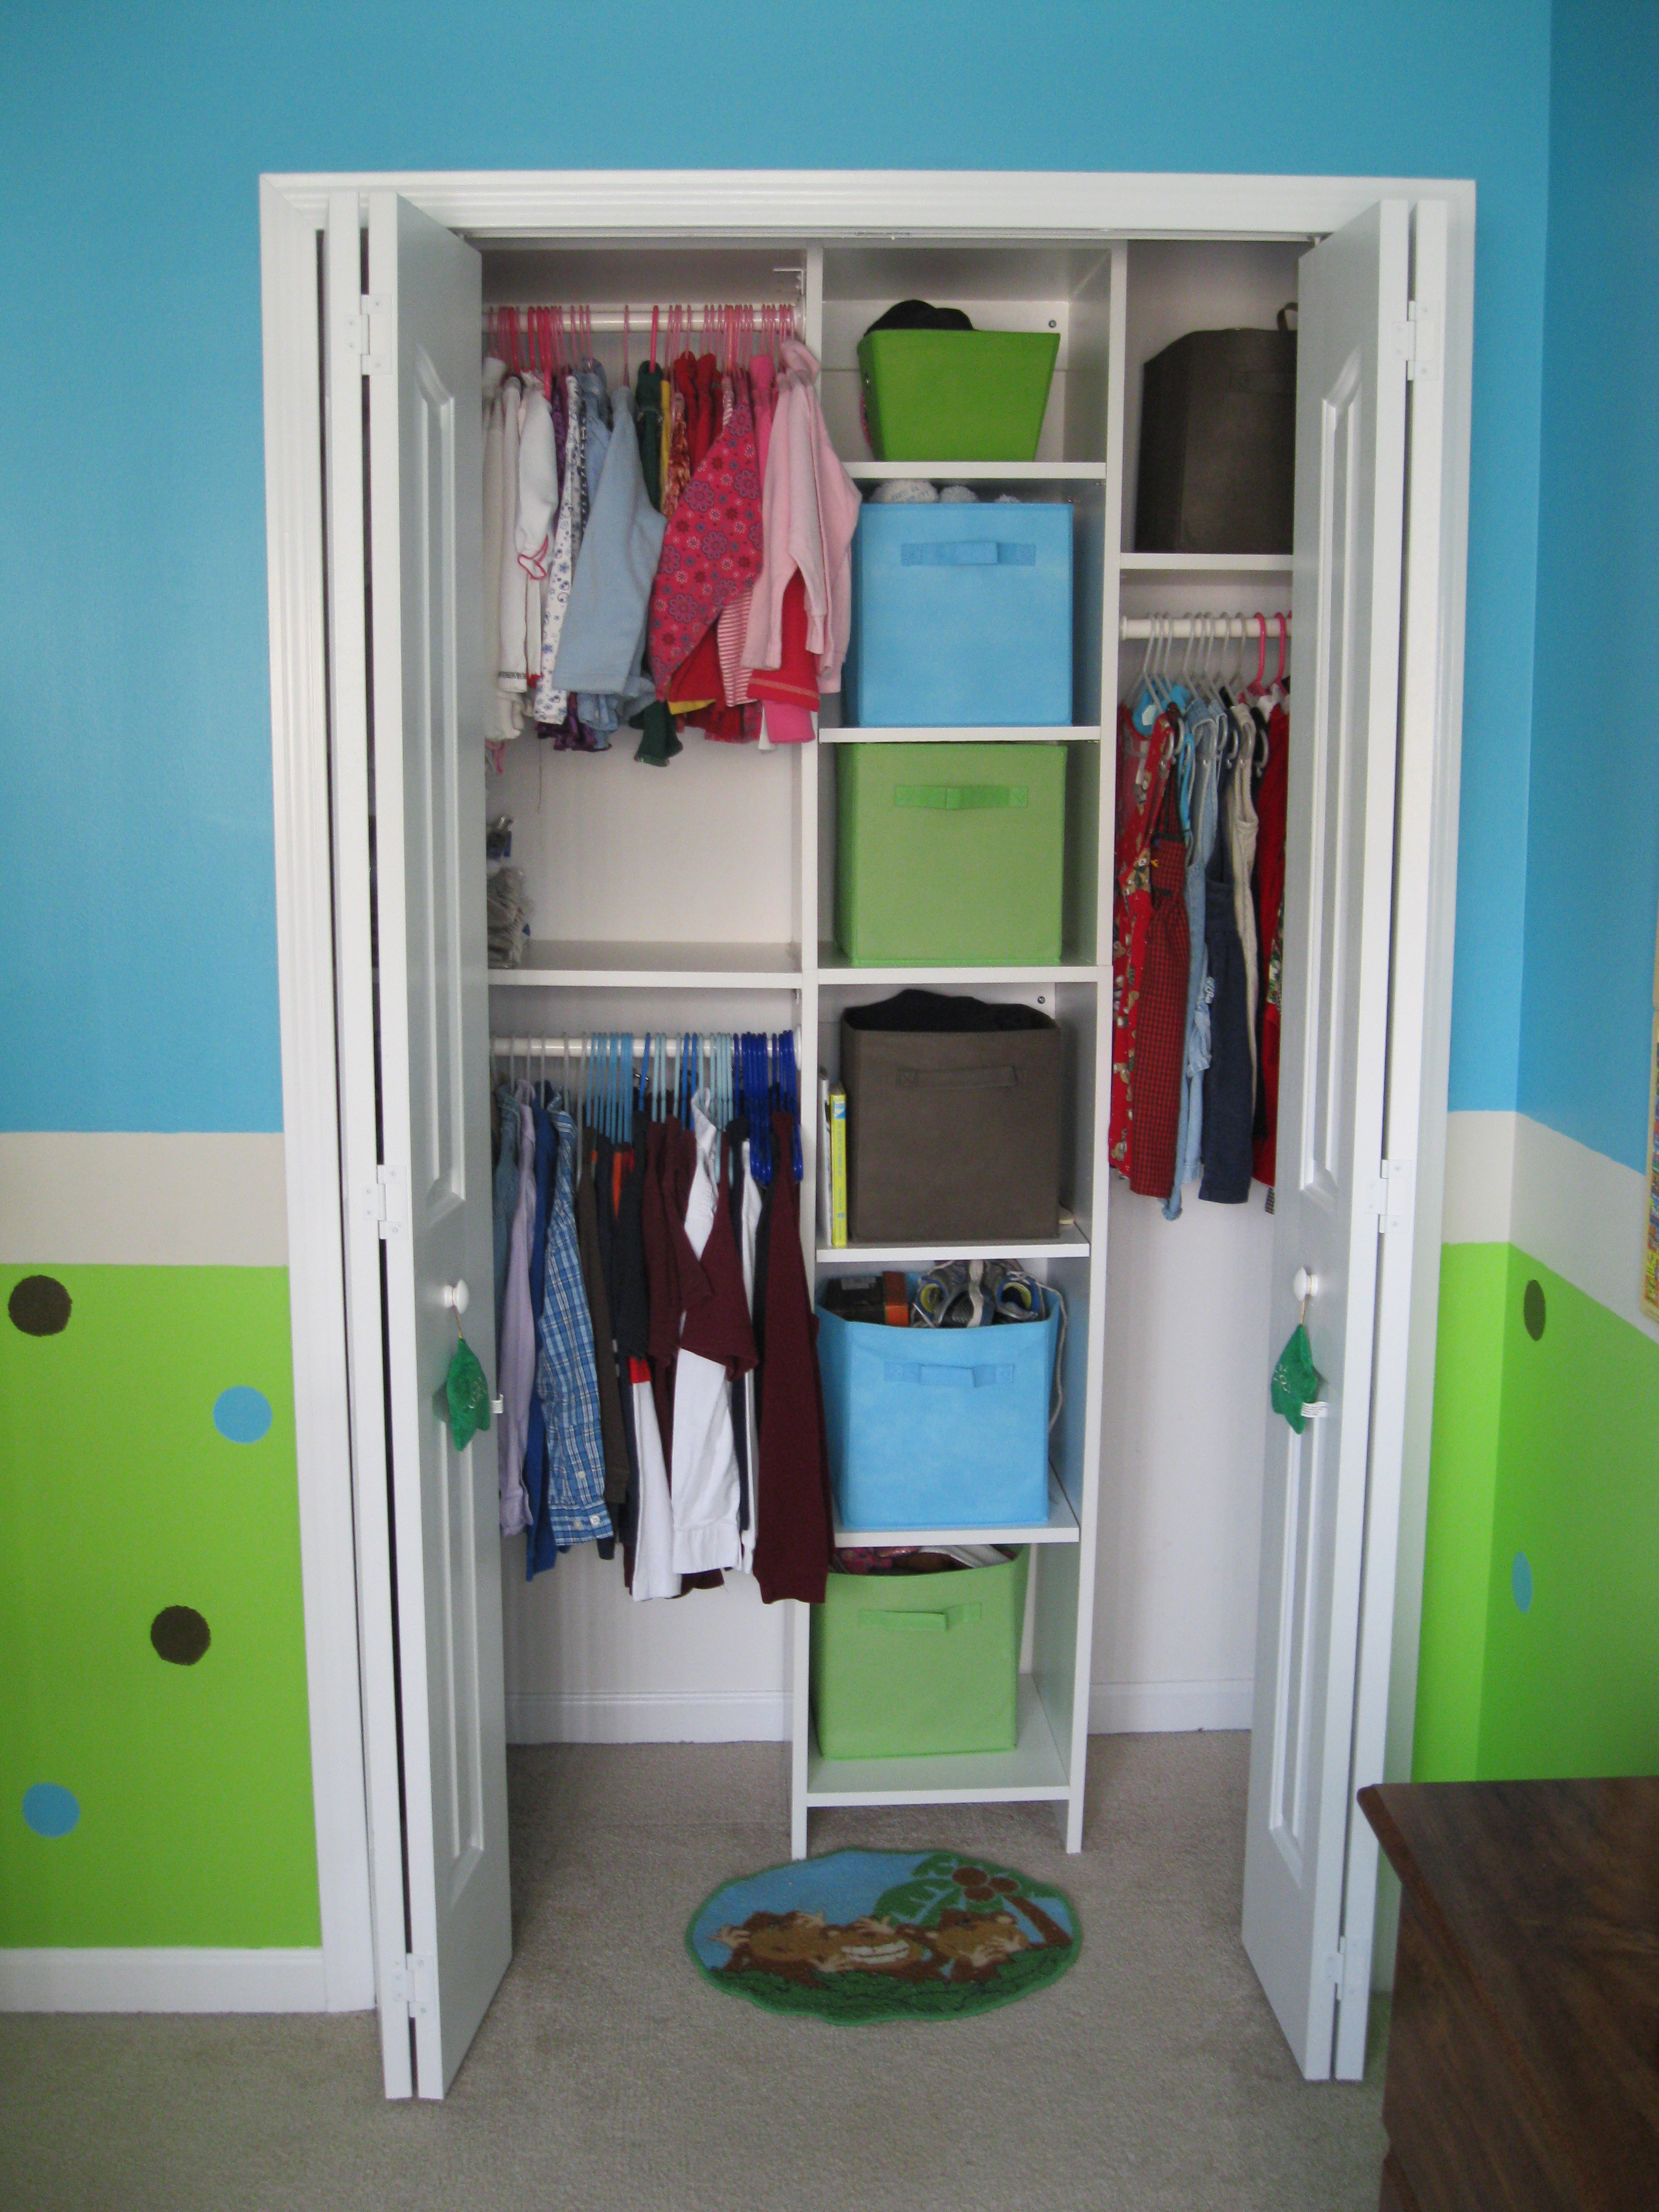 Childrens closet organization Kid Tiny After Completing Using Time Wisely Organizing Childrens Clothing Applying The Process